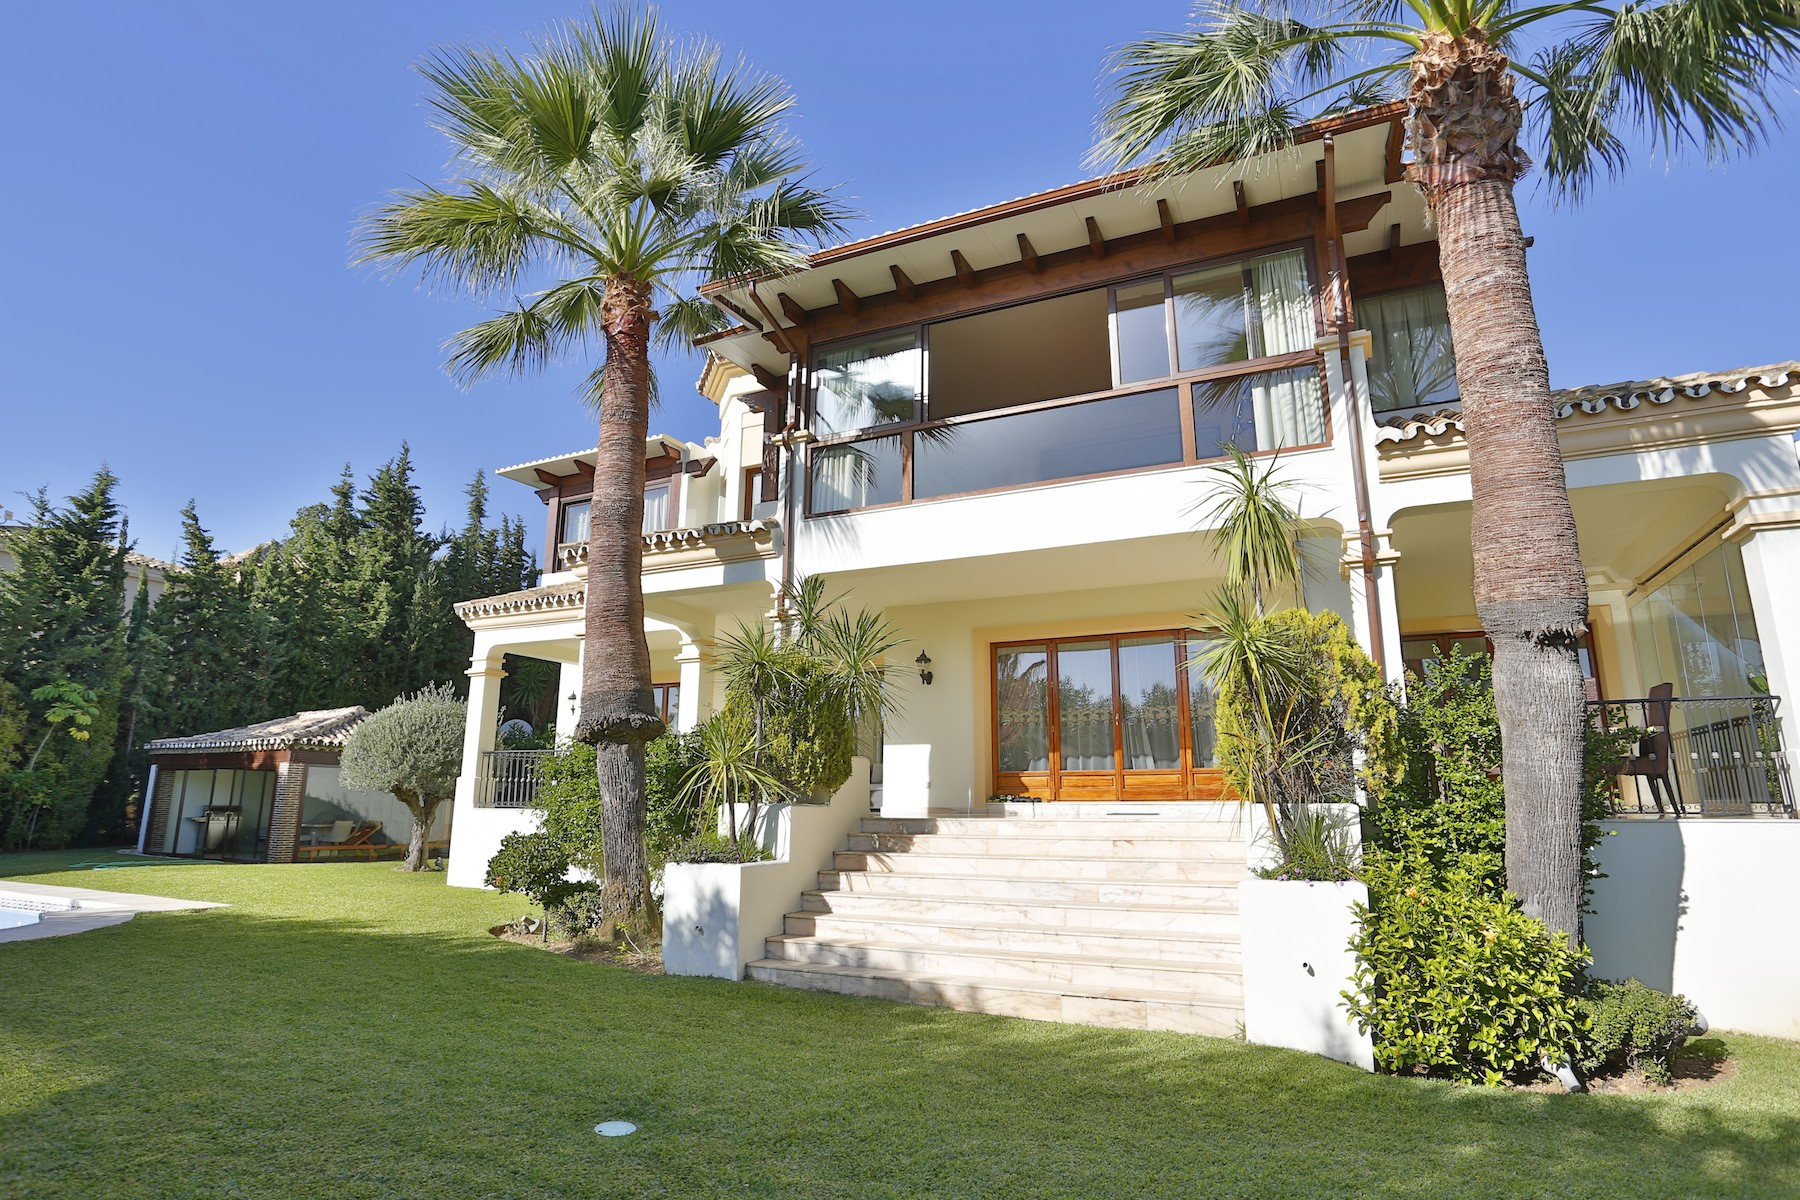 Einfamilienhaus für Verkauf beim Elegant villa situated in the best sought after residential area in Marbella Sierra Blanca, Marbella, Costa Del Sol, 29600 Spanien